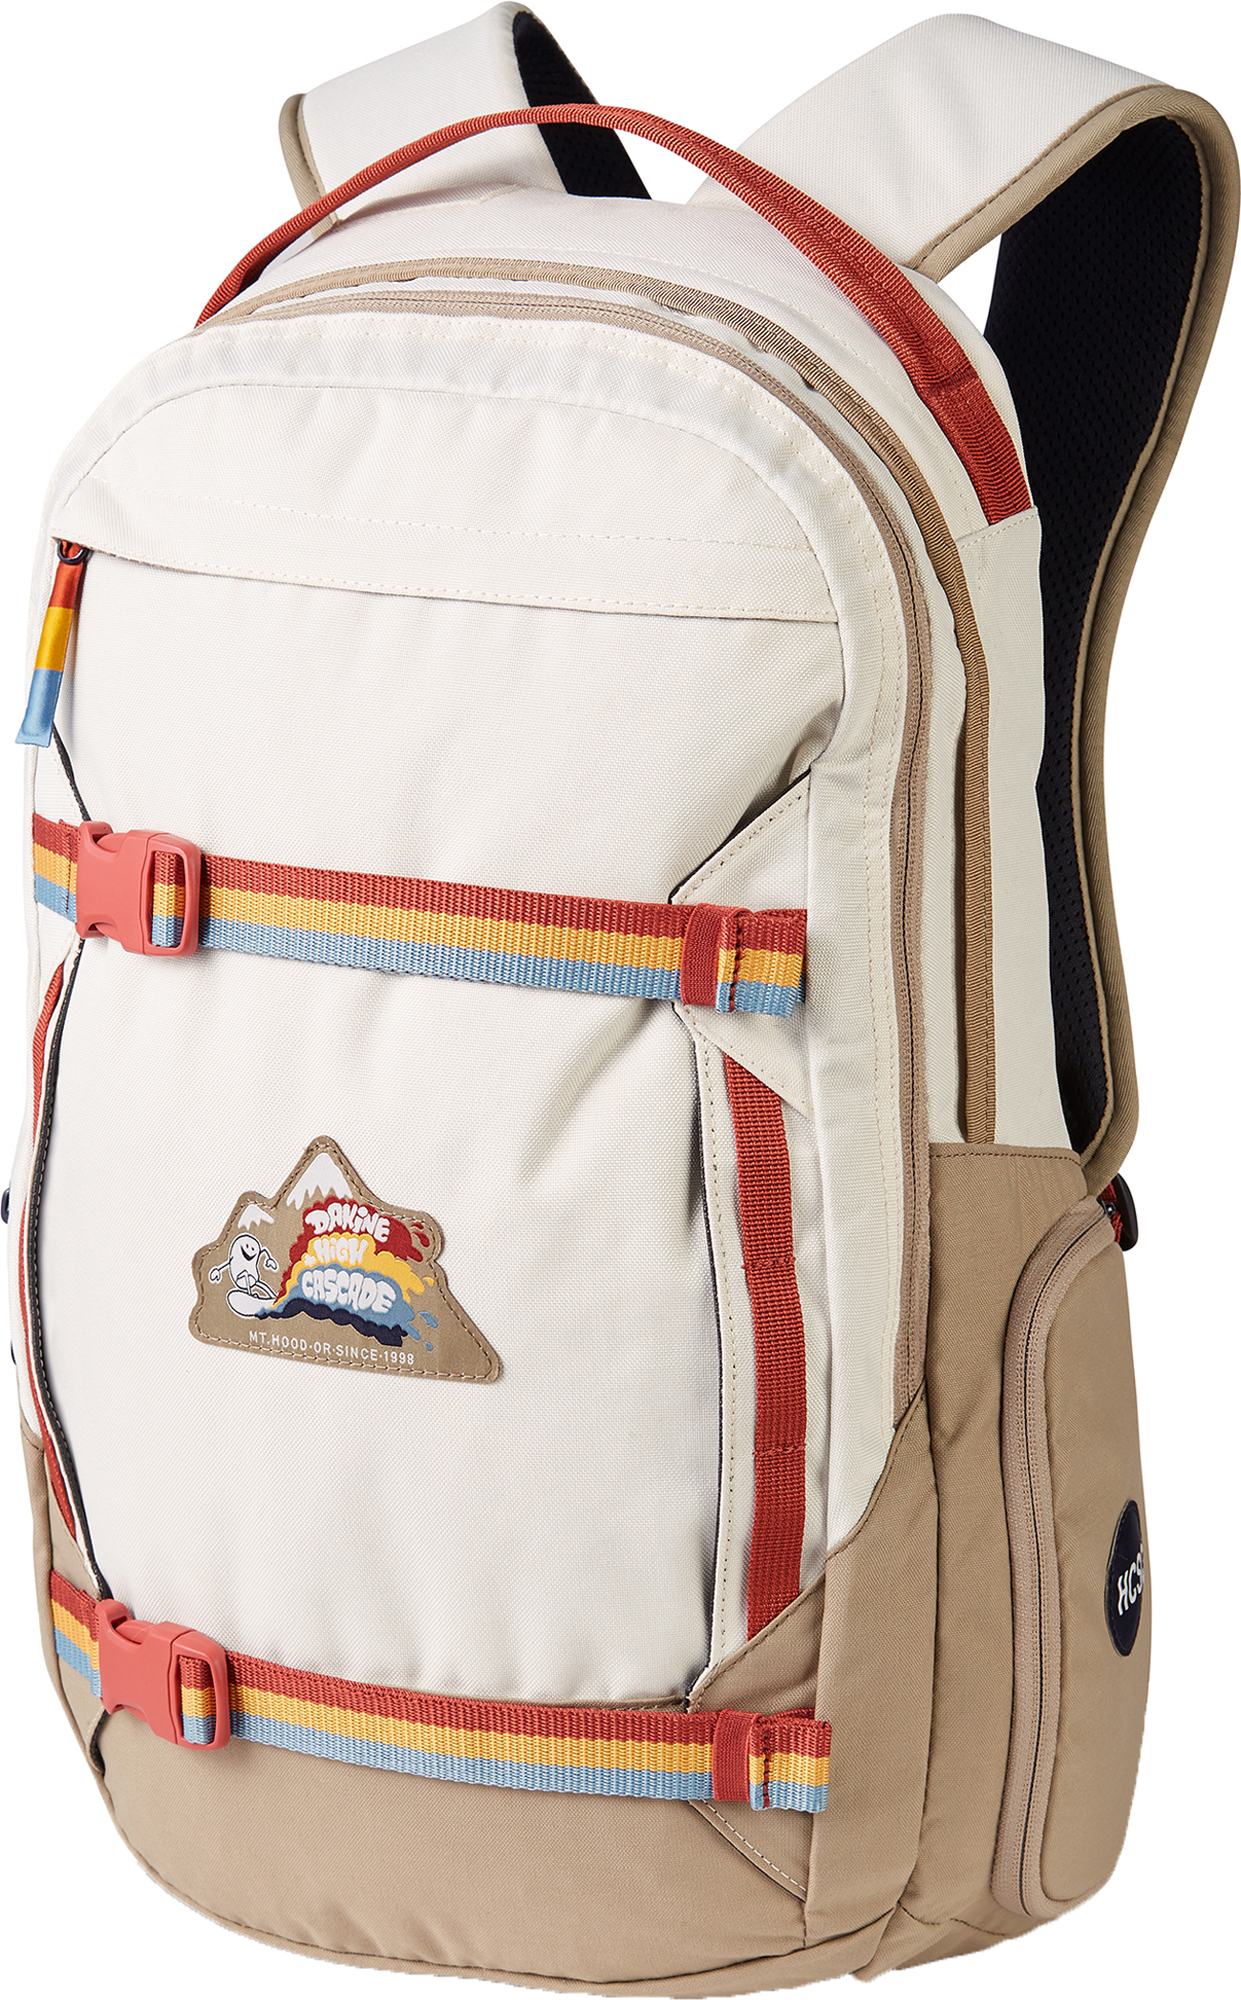 Dakine Рюкзак Dakine HAPPY CAMPER MISSION, 25 л рюкзак dakine dakine da779budefi1